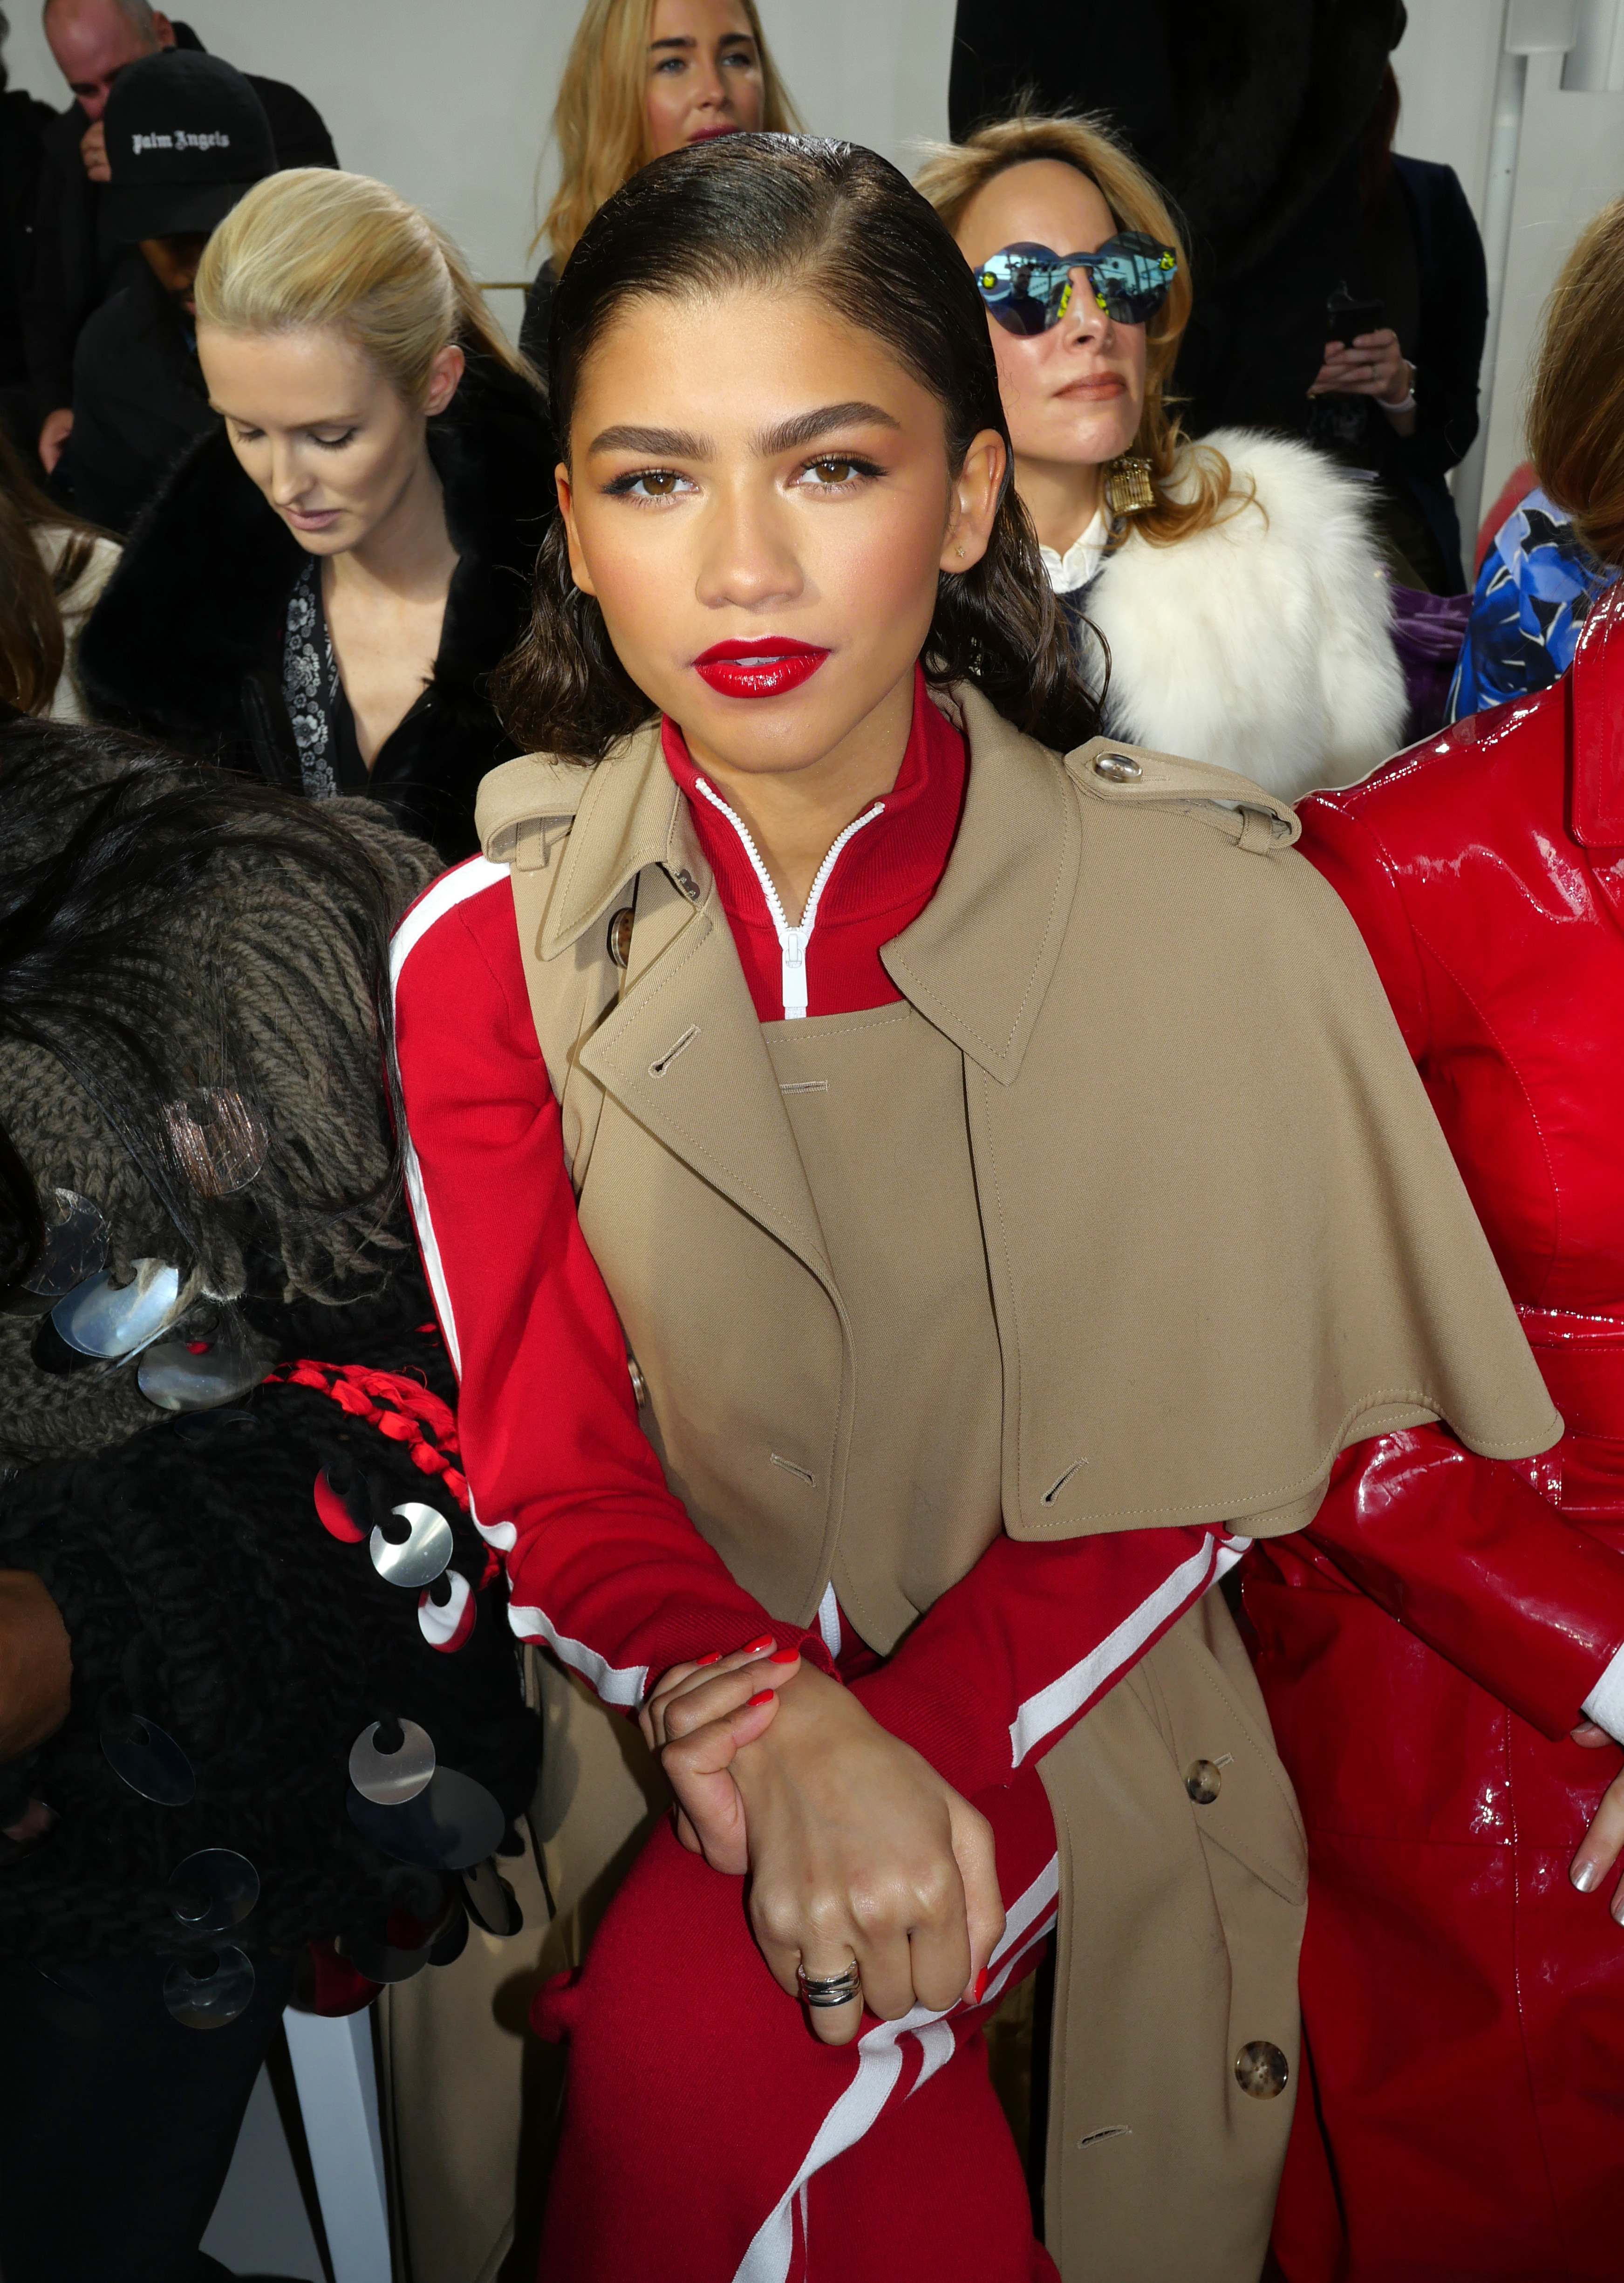 Zendaya appears in the front row of the Michael Kors show for Fall/Winter 2018 at New York Fashion Week on Feb. 14, 2018.